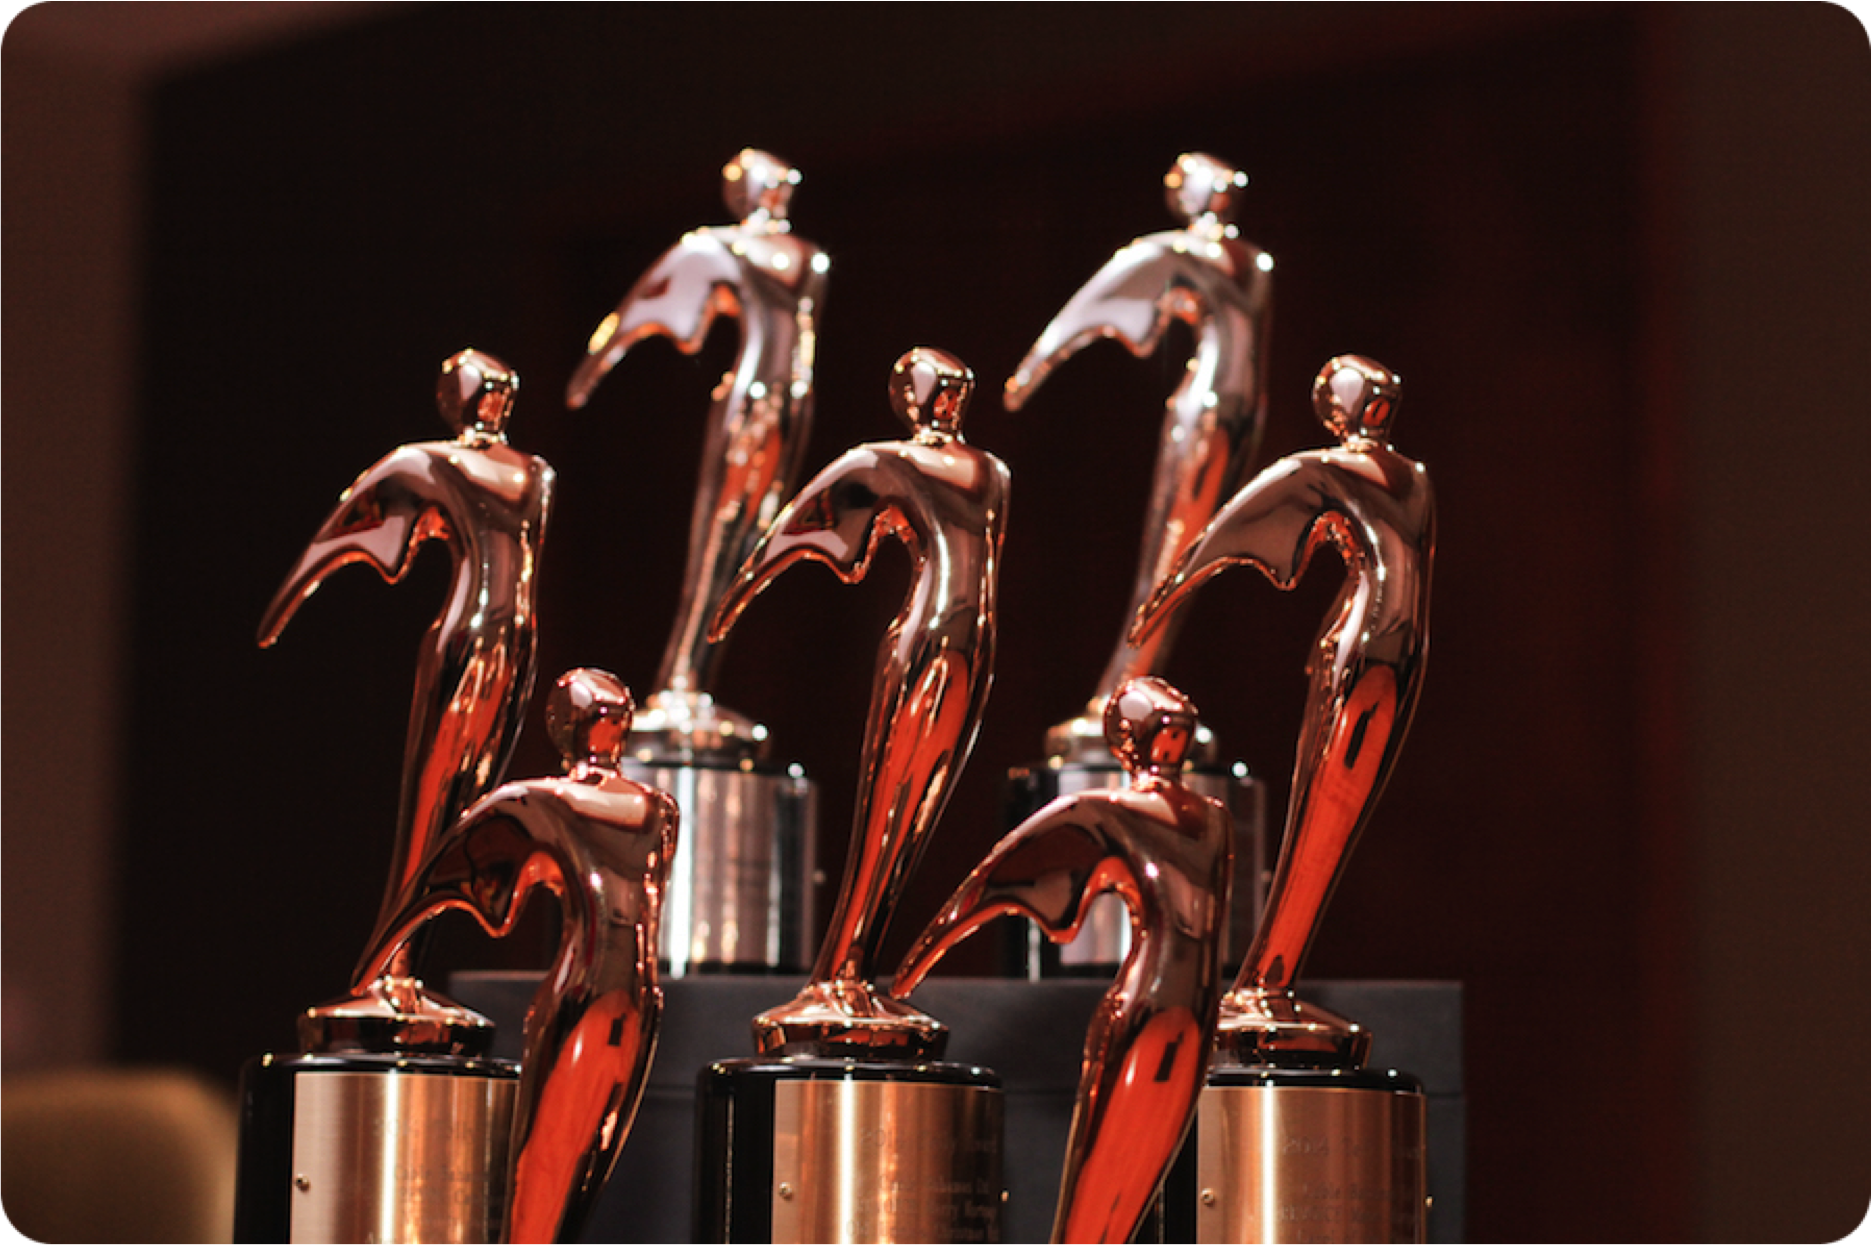 Telly Awards - Winner for production excellence - 2014-2015My directing and producing work has won 13 Telly Awards, including:• 2 Silver Awards - the highest honour• 11 Bronze Awards